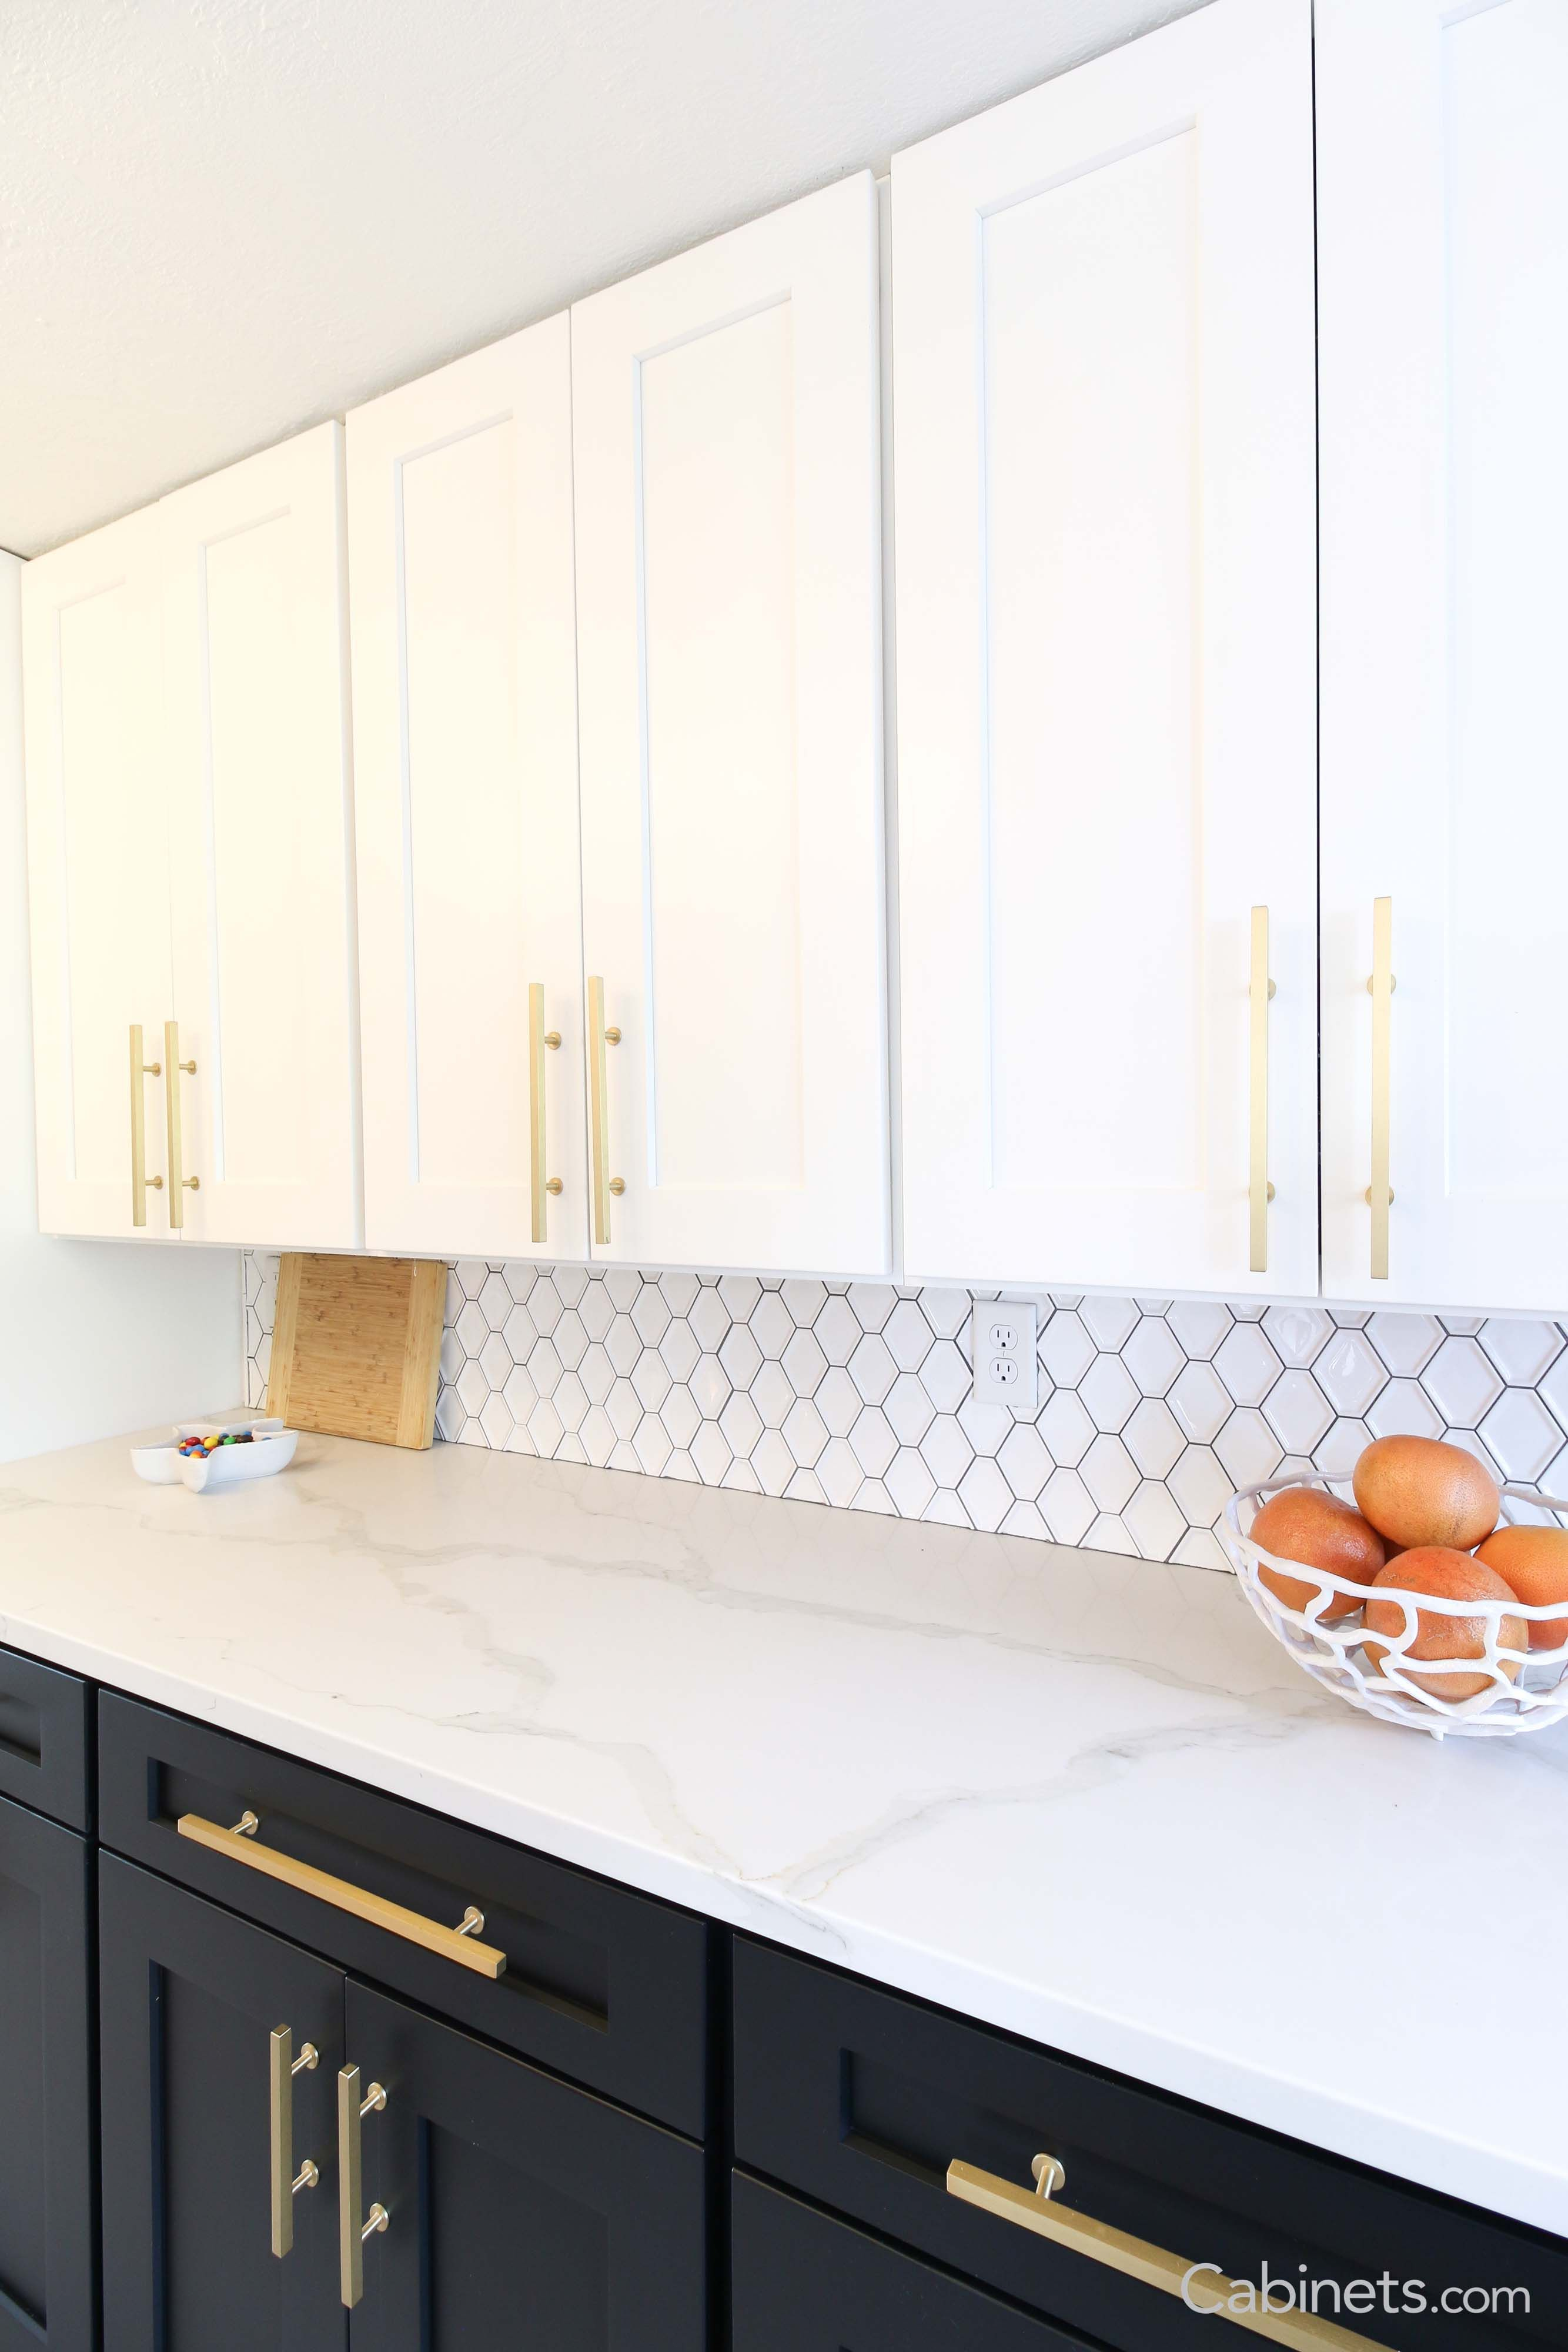 Black White And Gold Stunning Color Palette For This Mid Century Modern Kitchen New Kitchen Cabinets Modern Kitchen Modern Kitchen Design